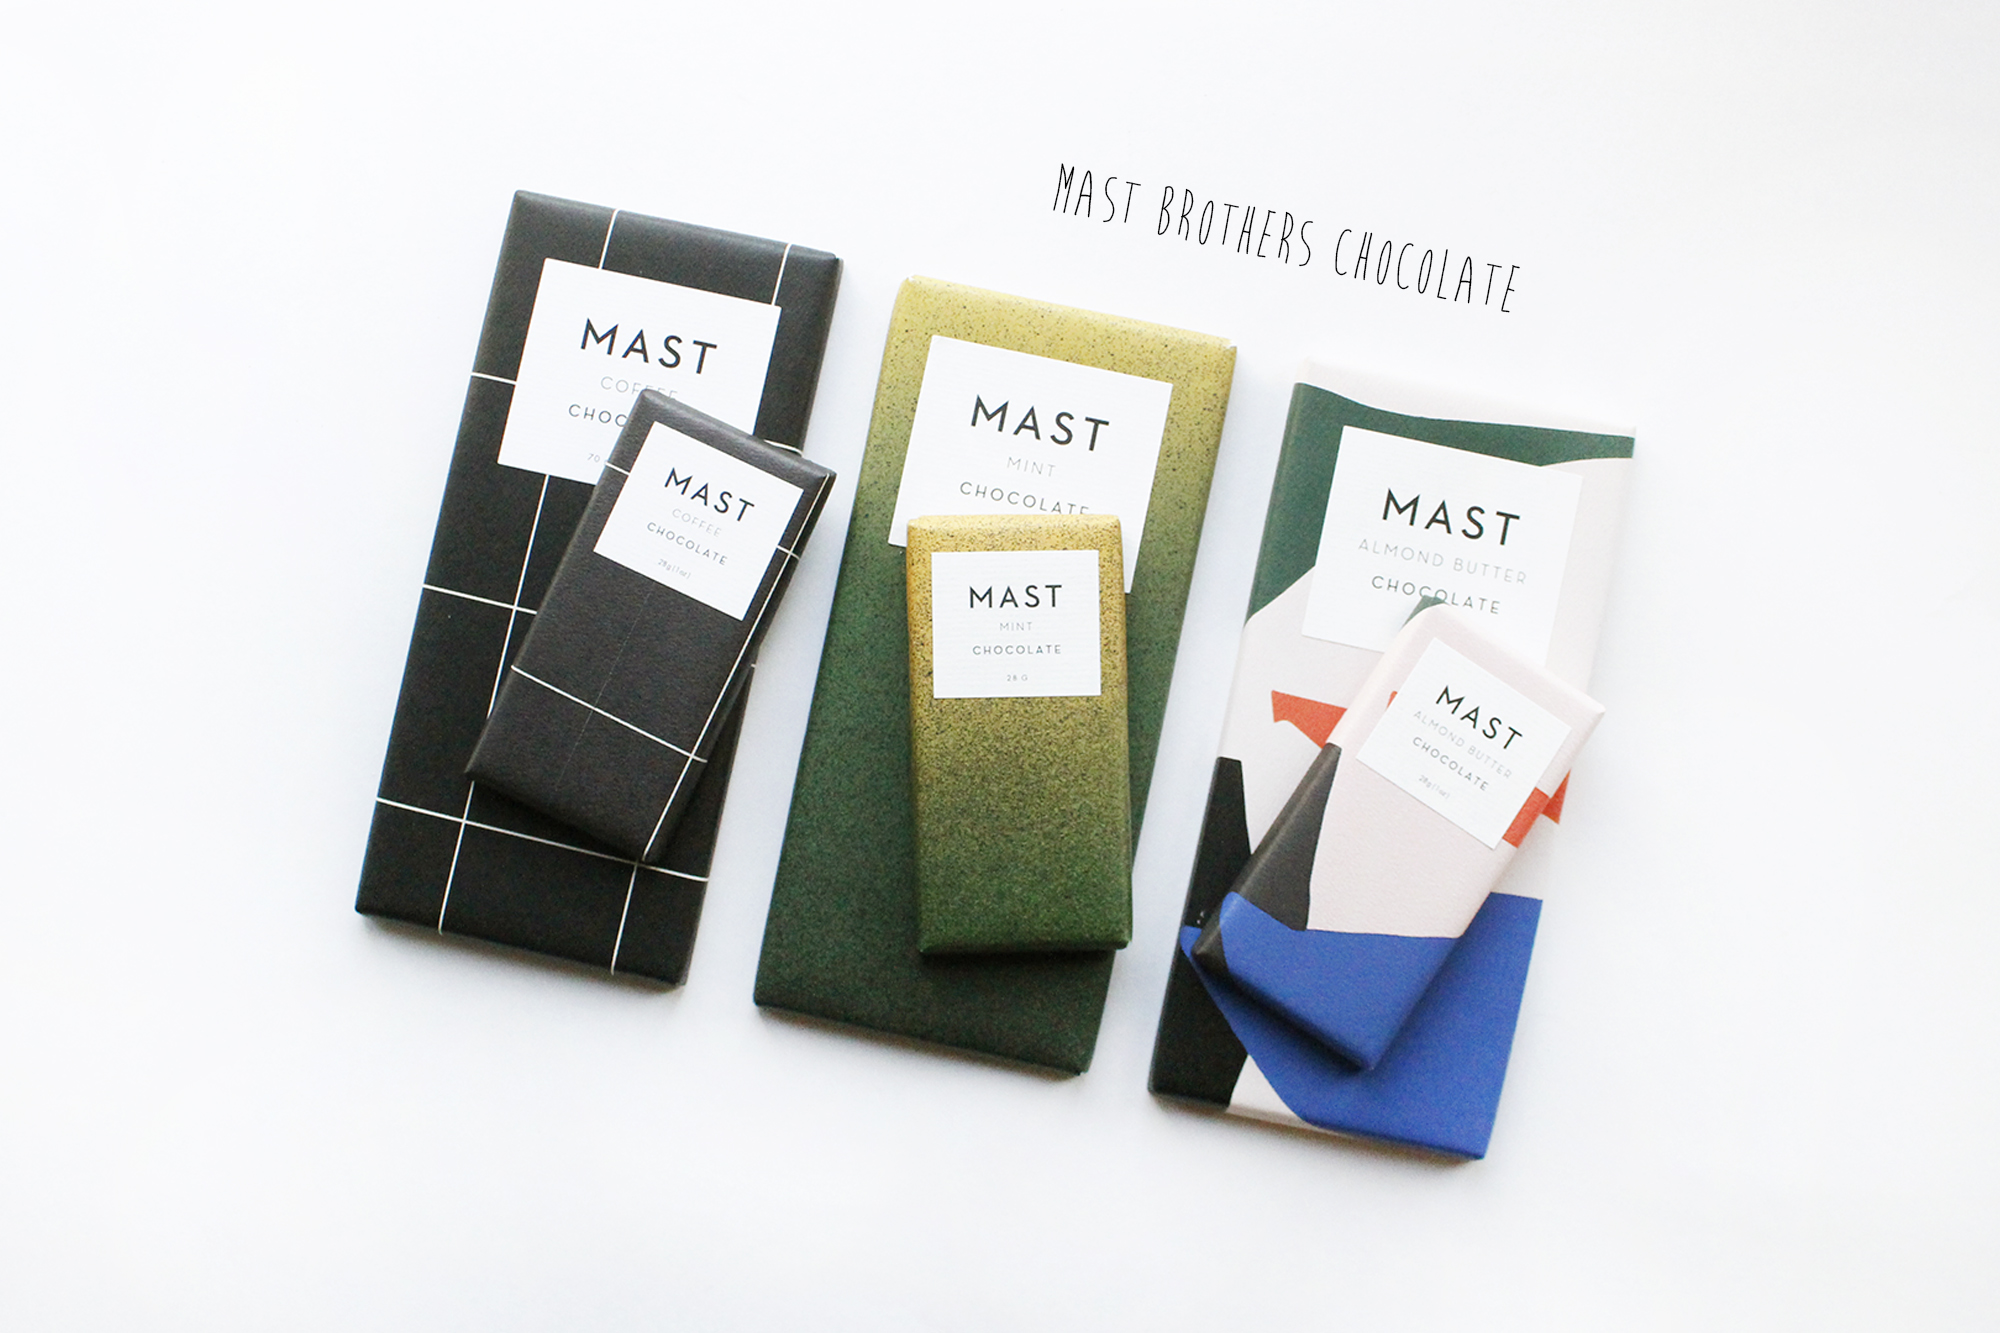 Because Mast Brothers has all the flavors you'll ever need.